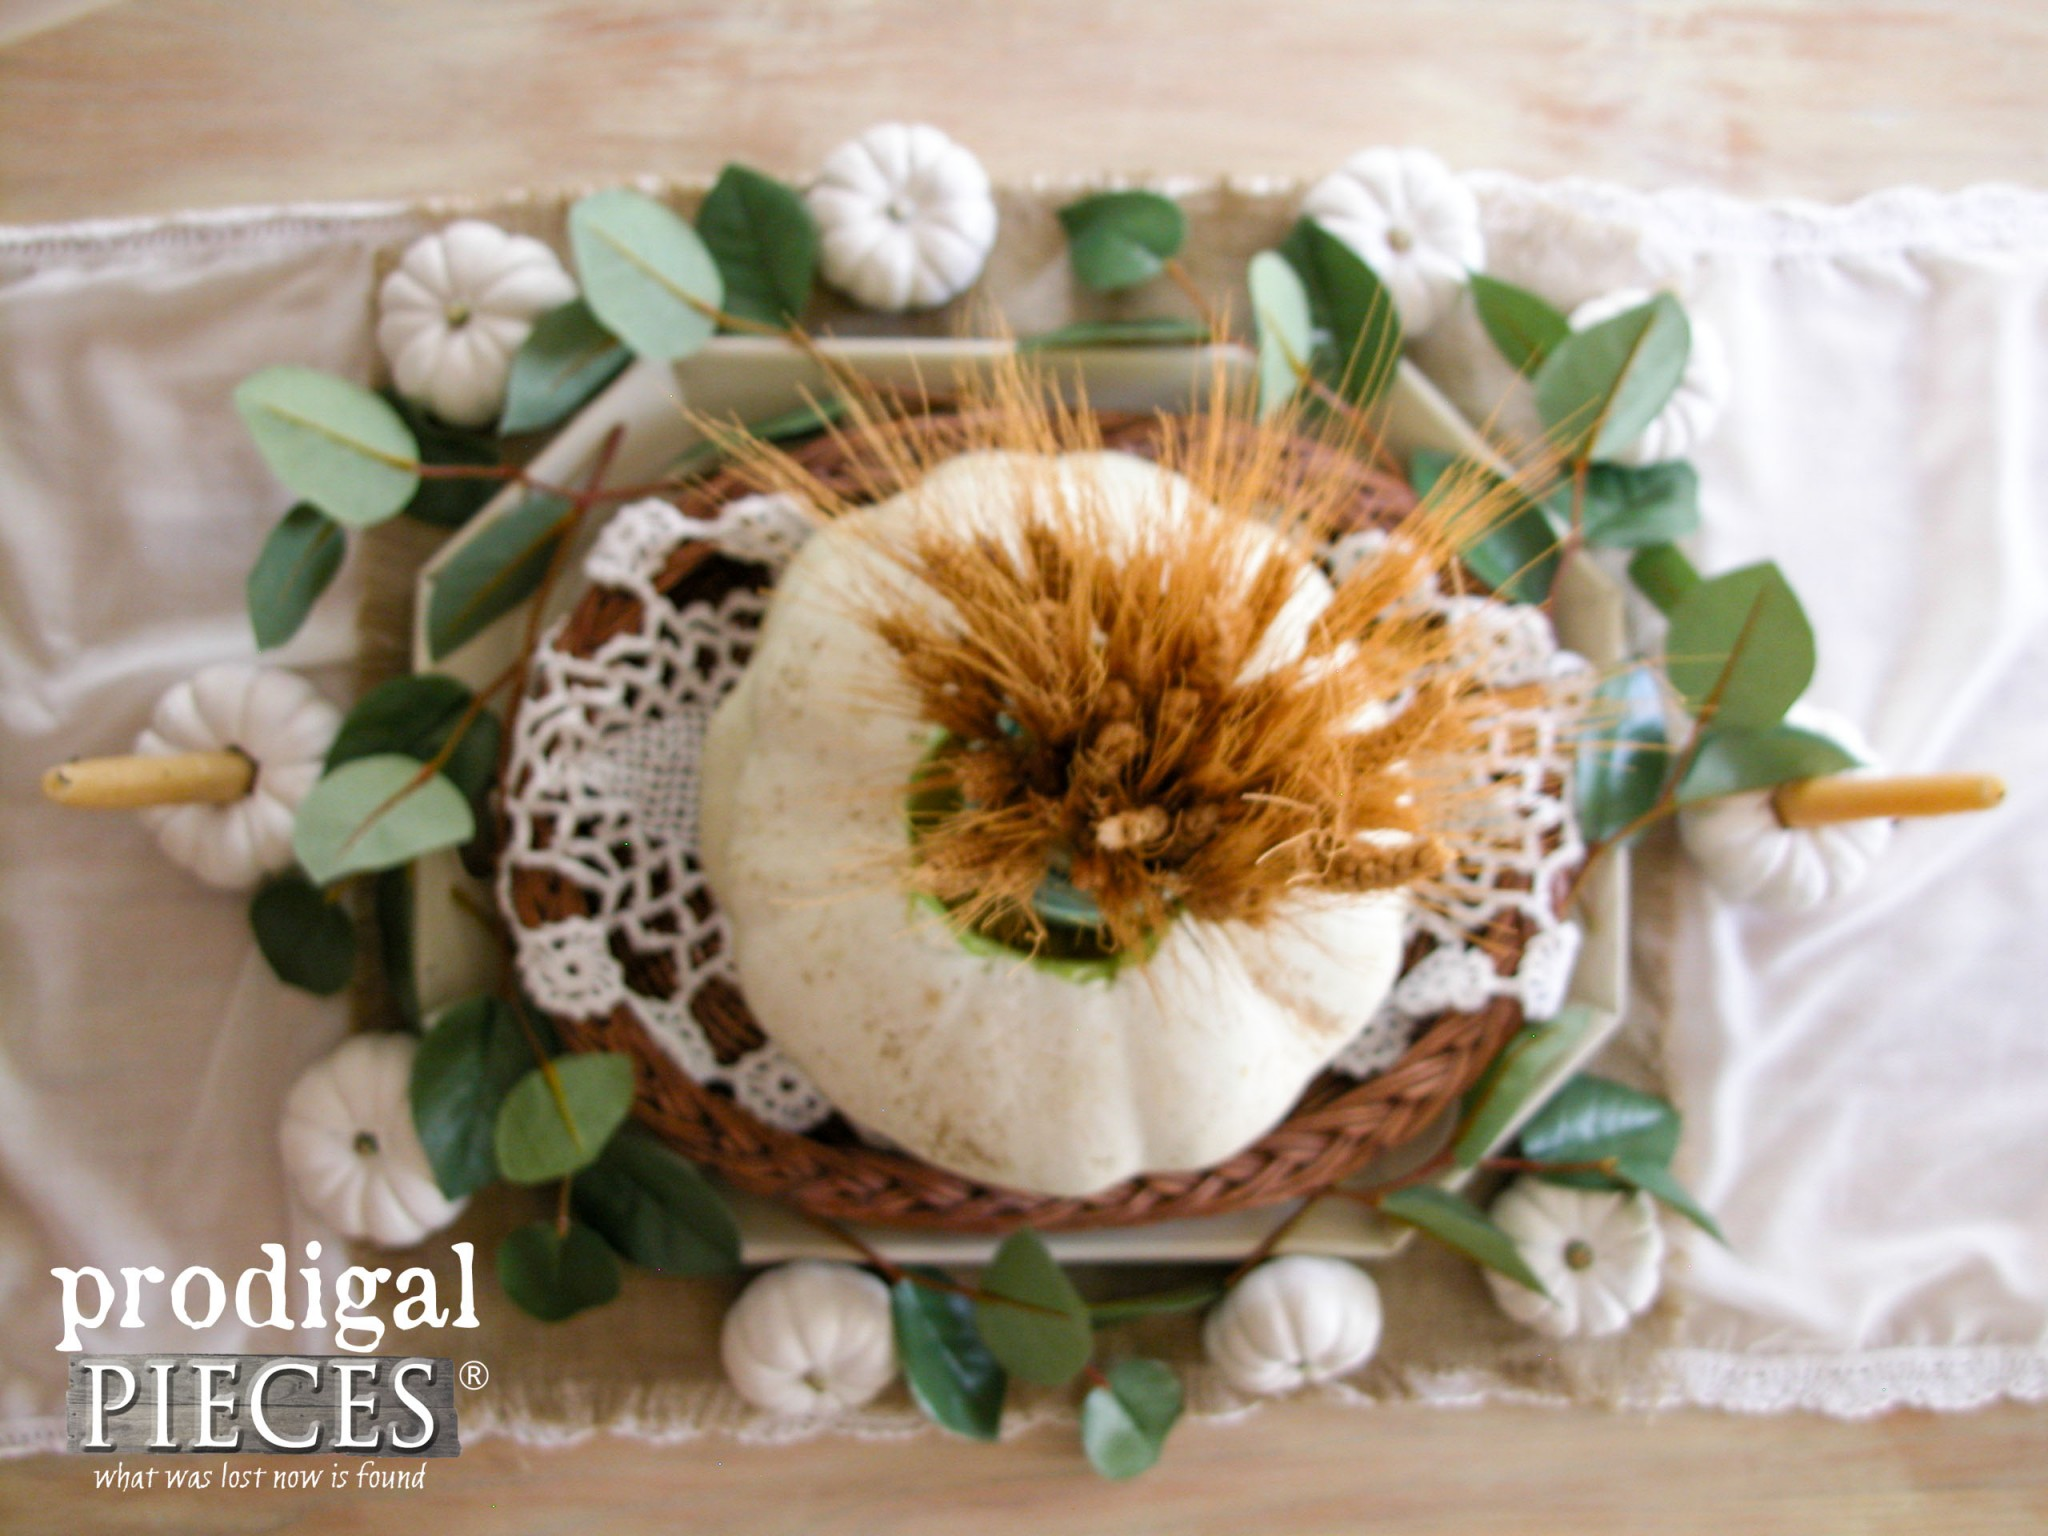 Rustic Farmhouse Style Thanksgiving Centerpiece Tutorial by Prodigal Pieces | www.prodigalpieces.com